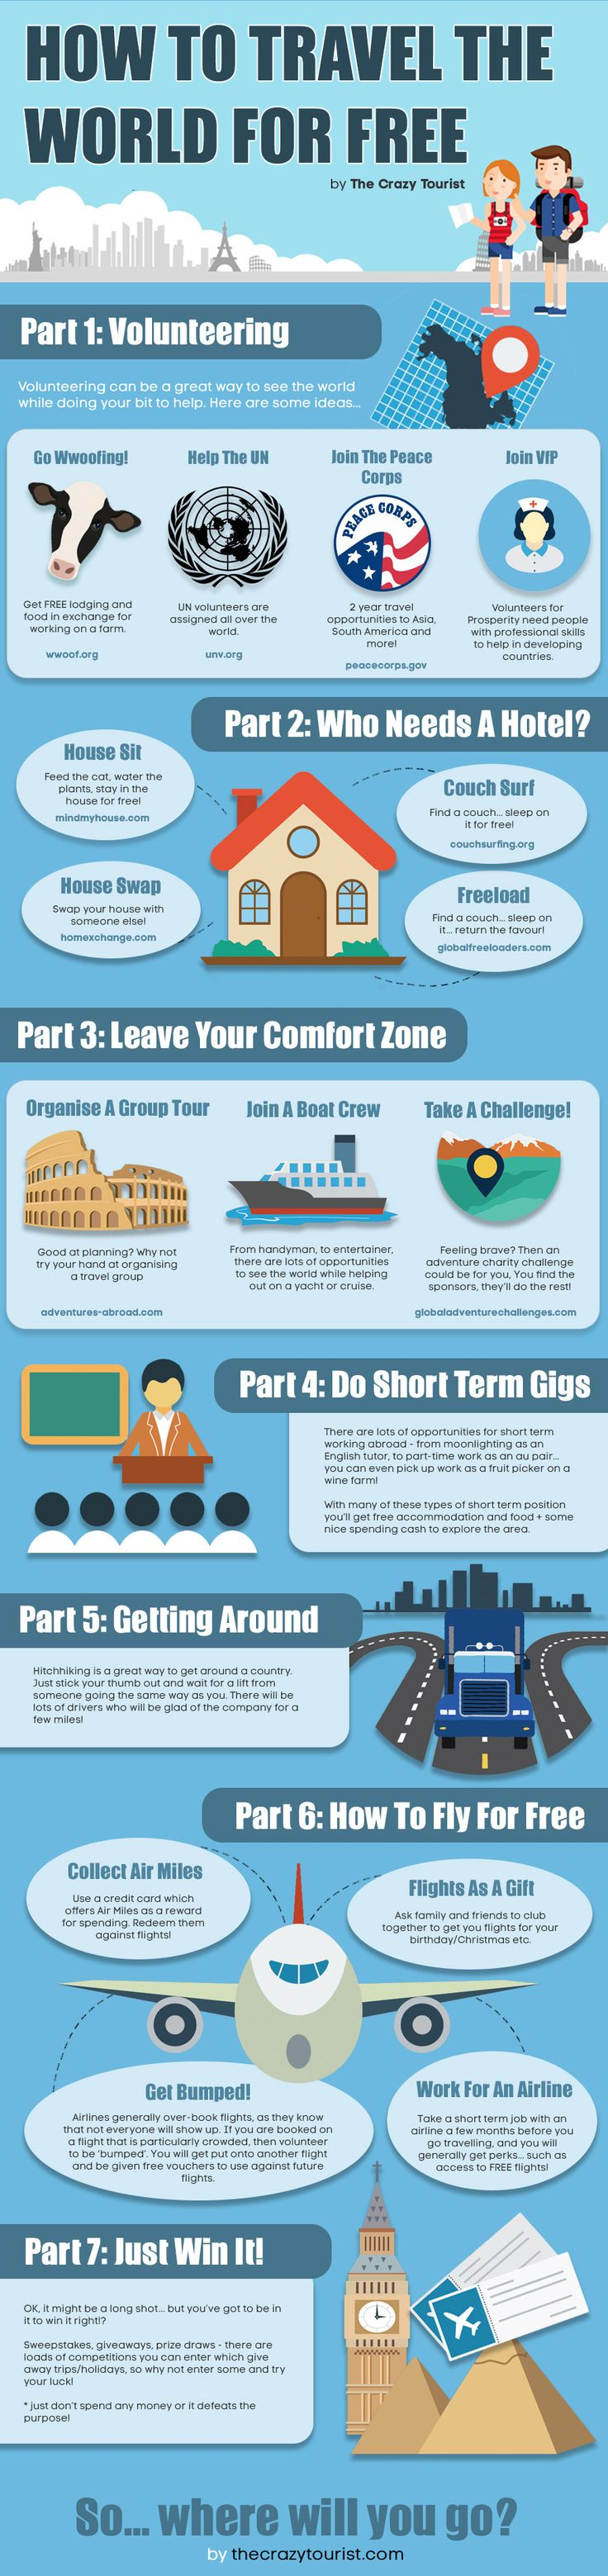 How to travel the world for Free #infographic #Travel #HowTo                                                                                                                                                      More